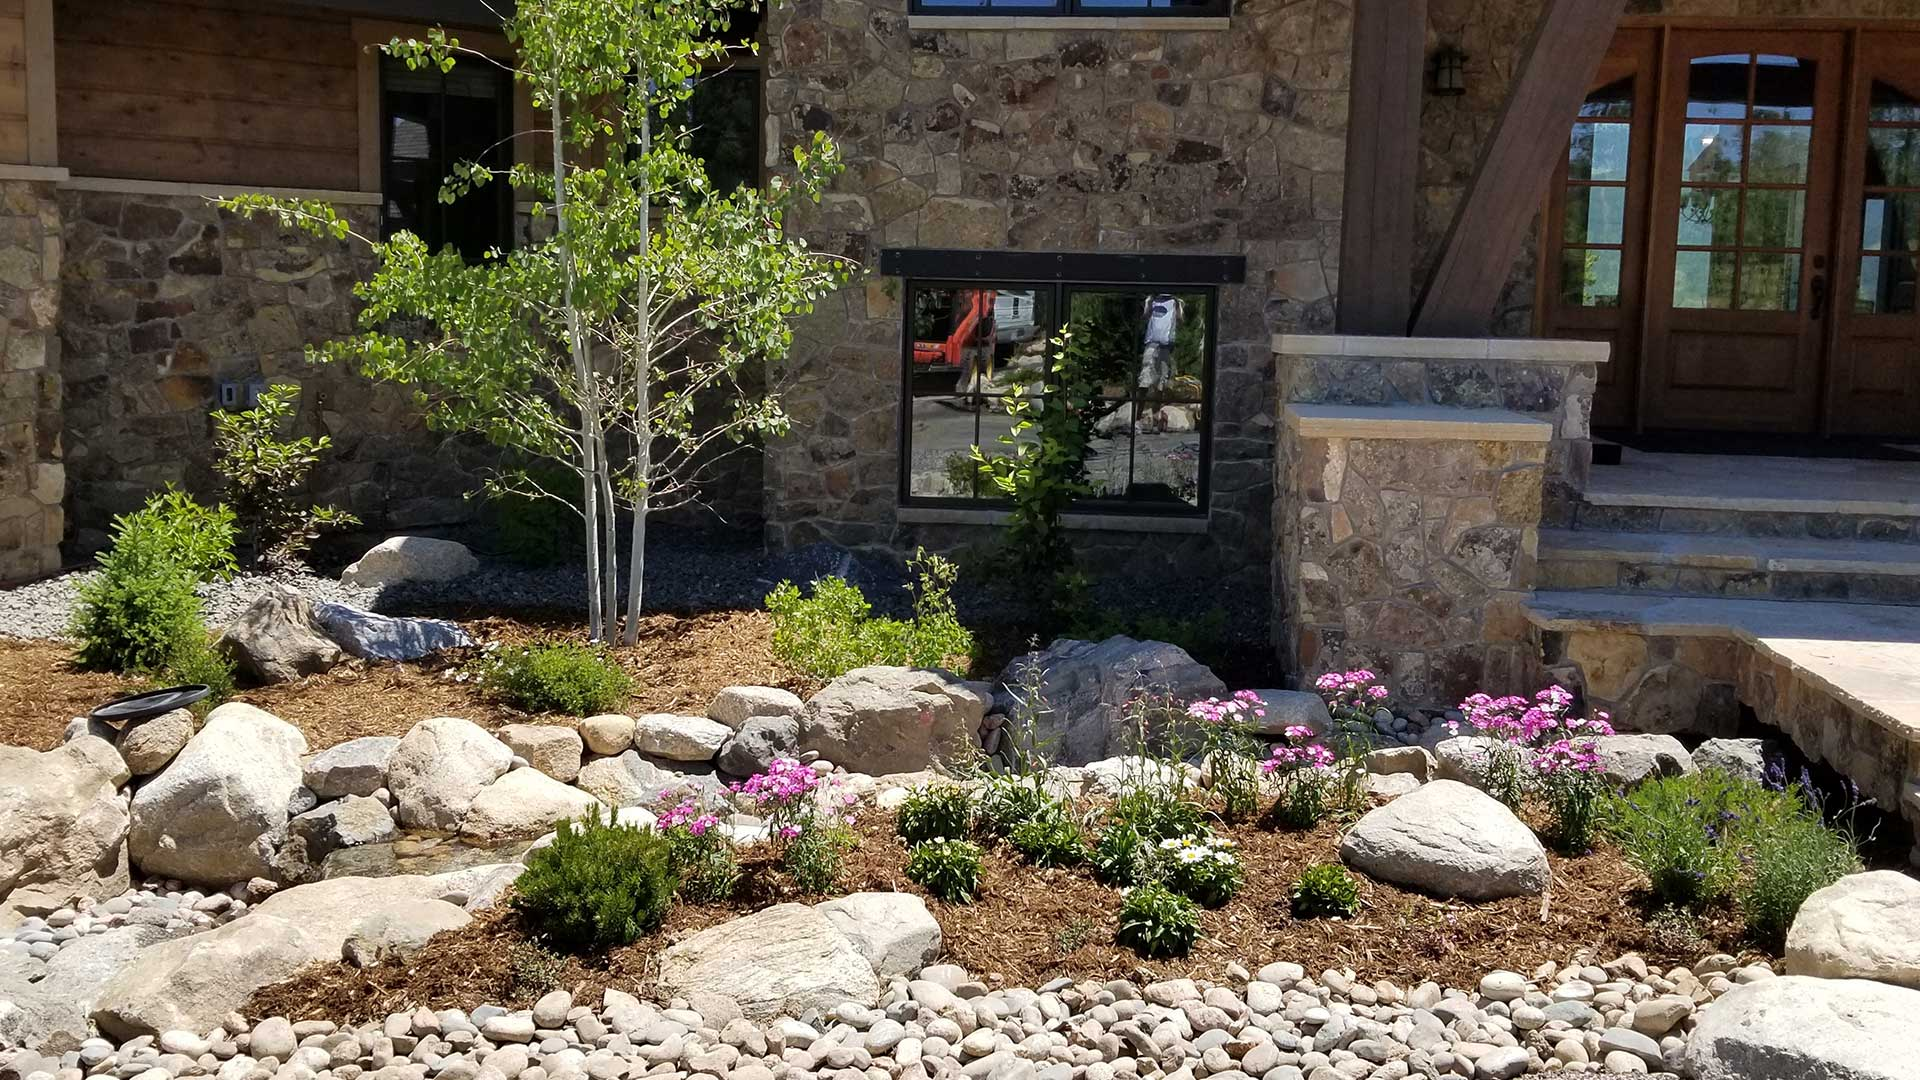 Landscaping in the front of a satisfied customer's home.